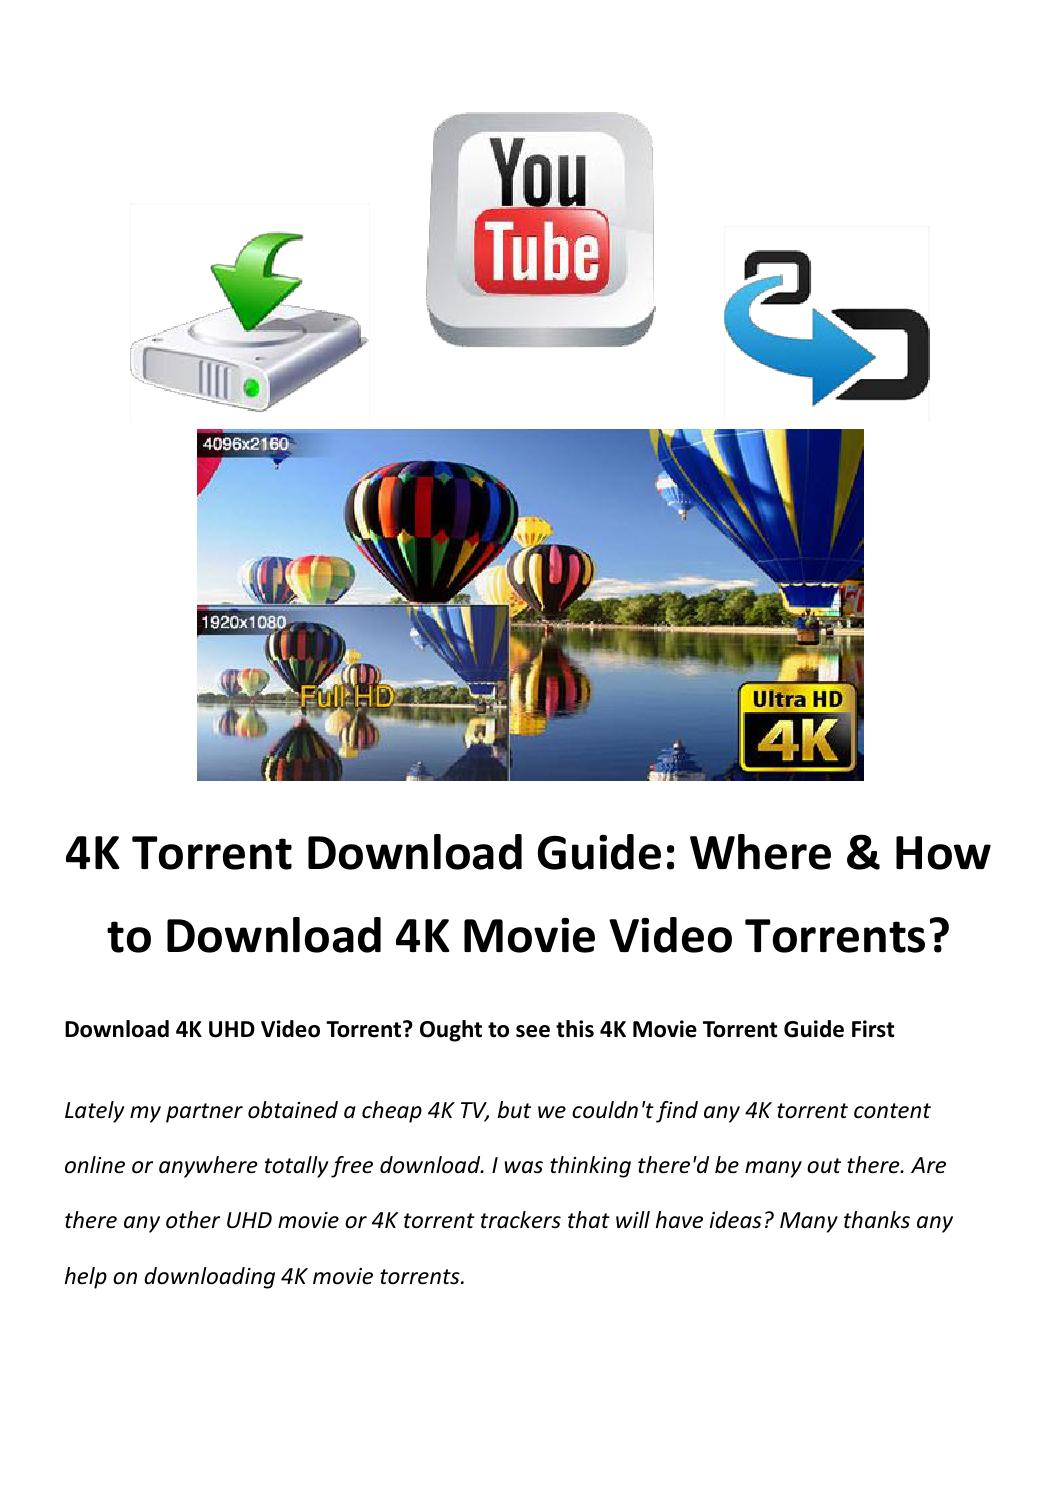 4k Torrent Download Guide By Rick Drolet Issuu